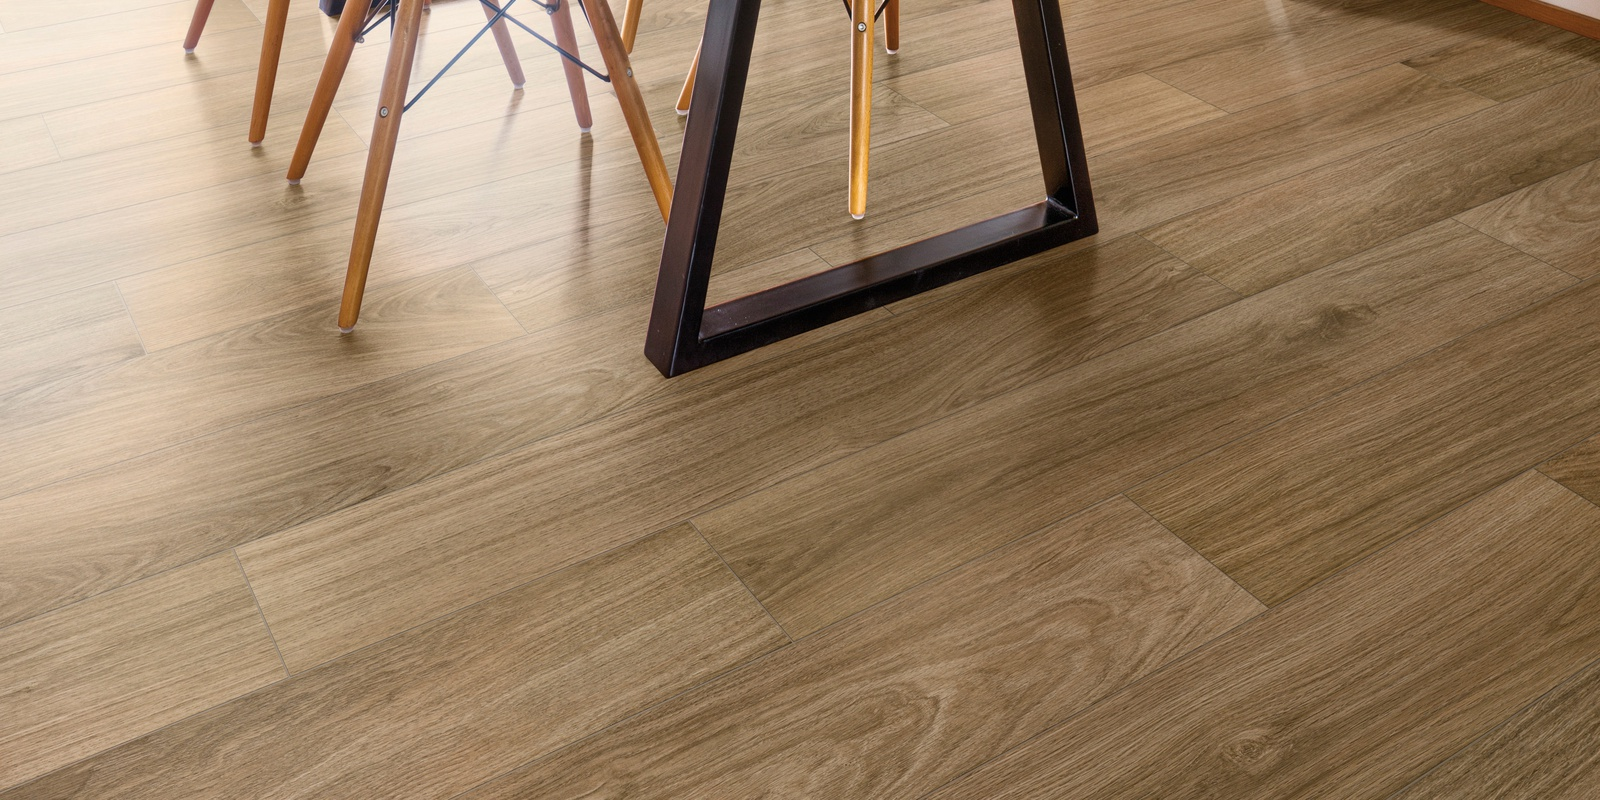 Distillery Hdp The Future Of Wood Look Porcelain Comes